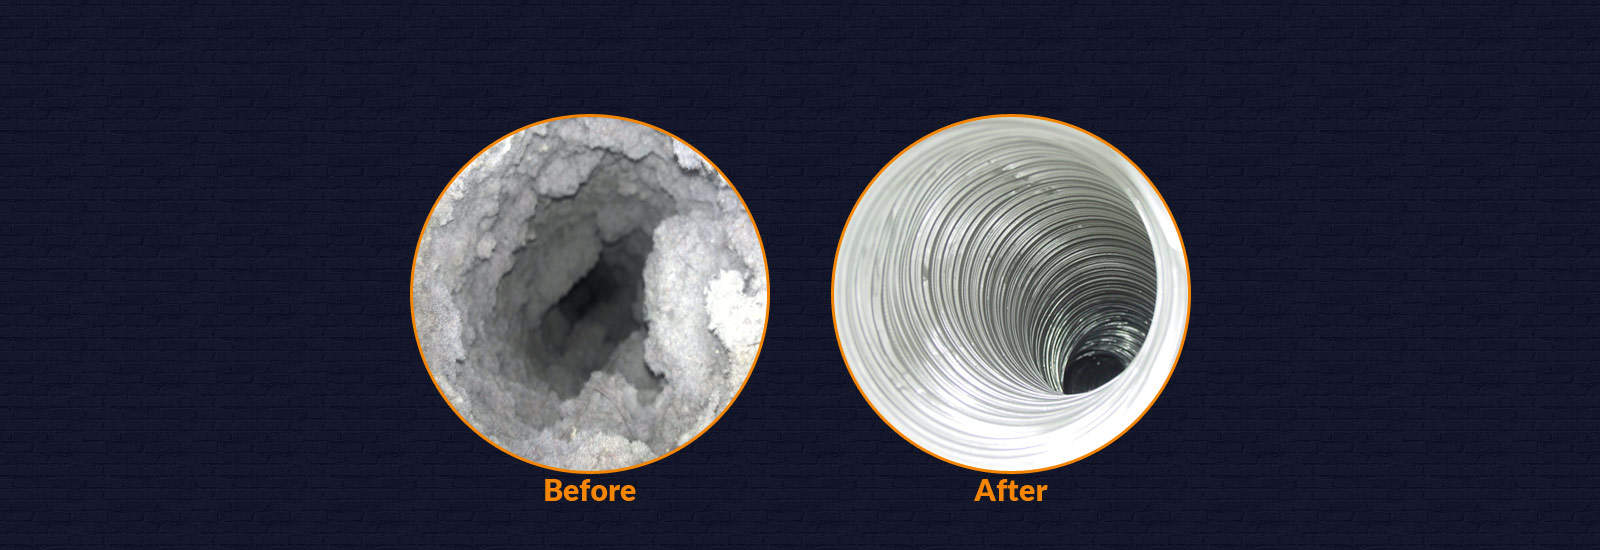 dryer vent cleaning companies